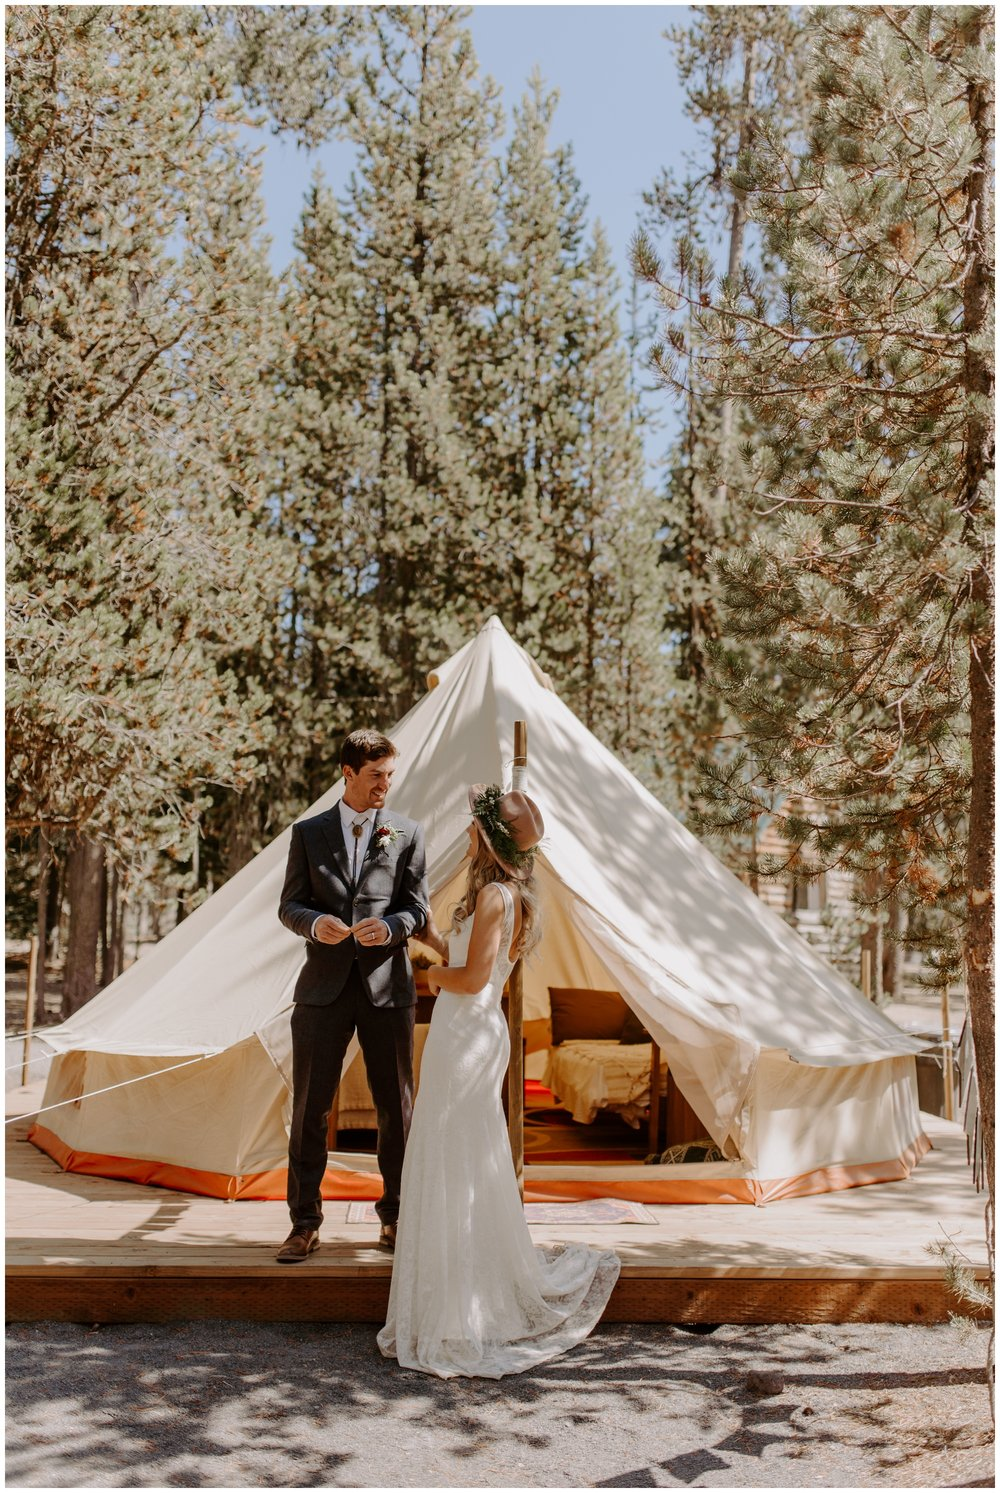 Bend Boho Campsite Wedding Eastern Oregon - Jessica Heron Images_0056.jpg